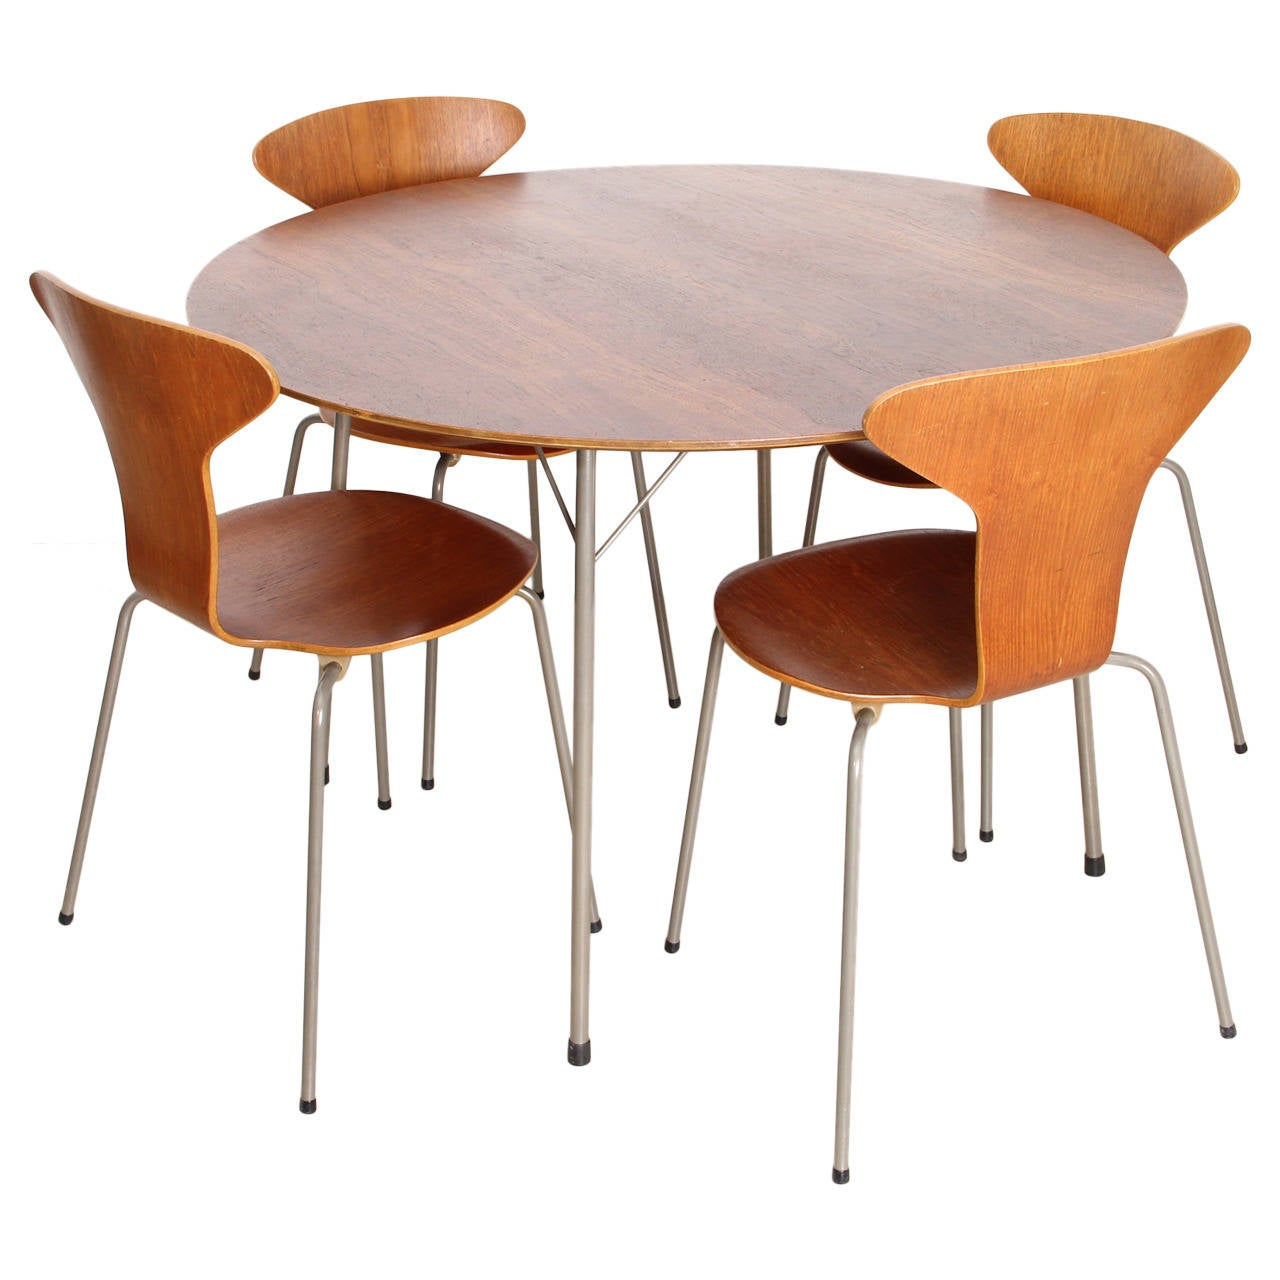 Arne Jacobsen Dining Set With Four Mosquito Chairs Produced By Fritz Hansen For